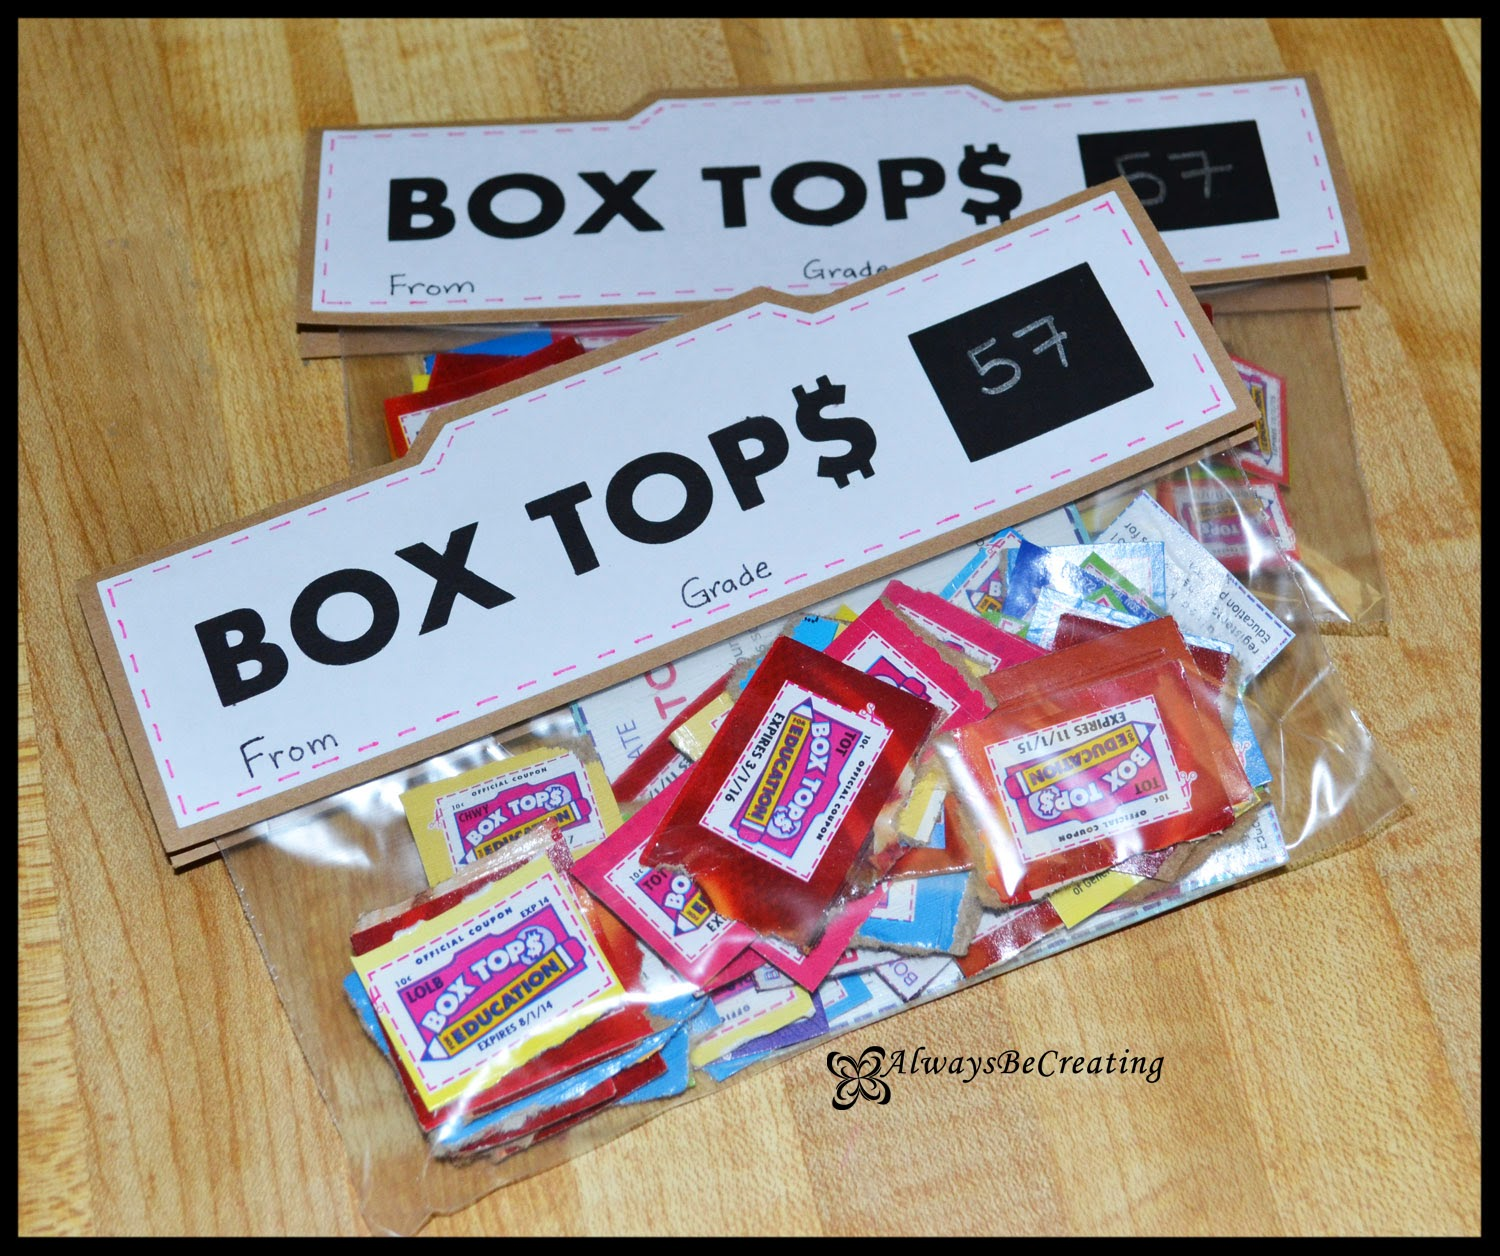 http://49fifty.weebly.com/1/post/2014/02/box-tops-for-educationfor-our-niece-and-nephew.html